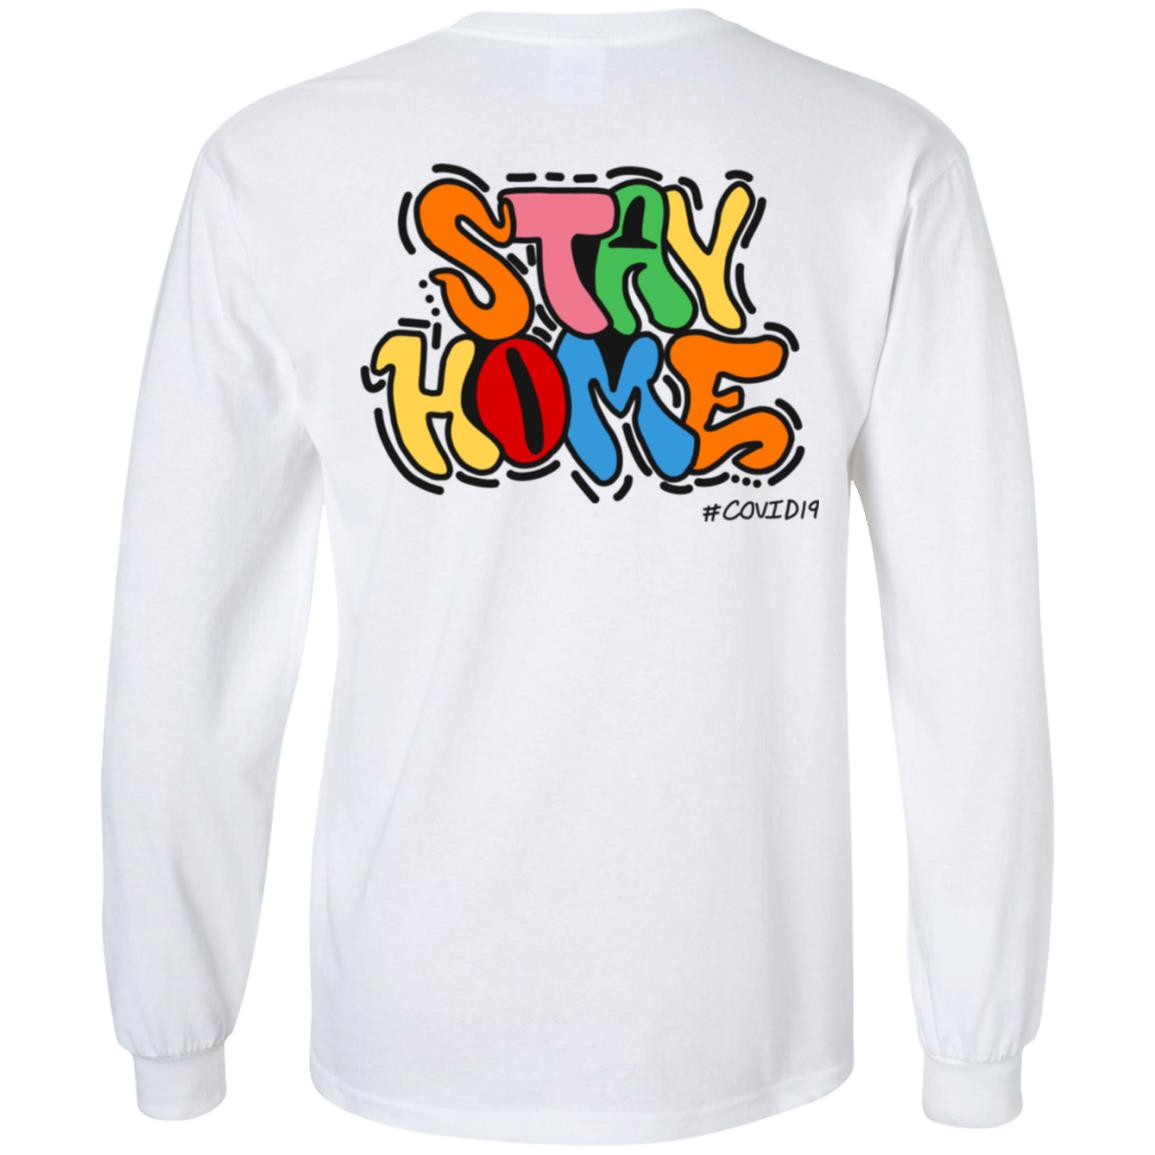 Stay Home Long Sleeve